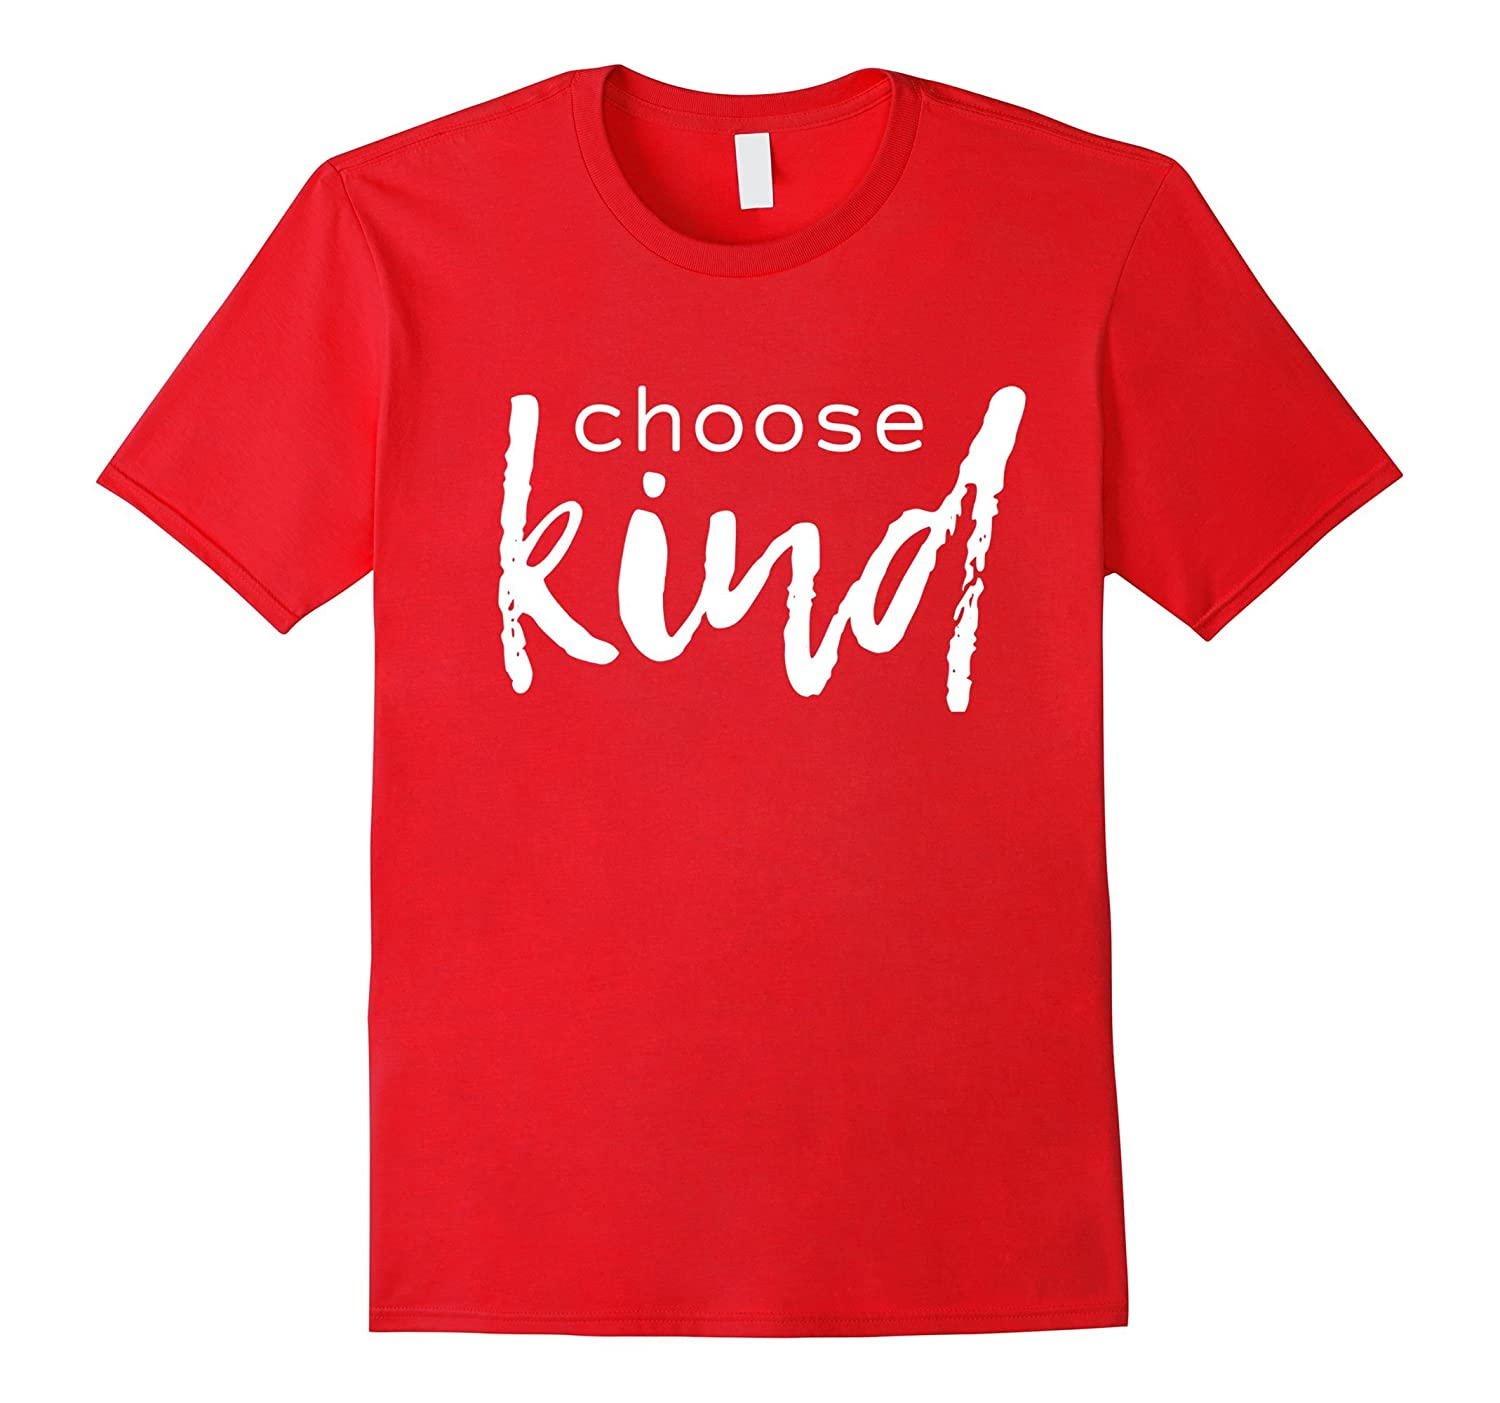 Choose Kind T-Shirt - White Font Design-ah my shirt one gift